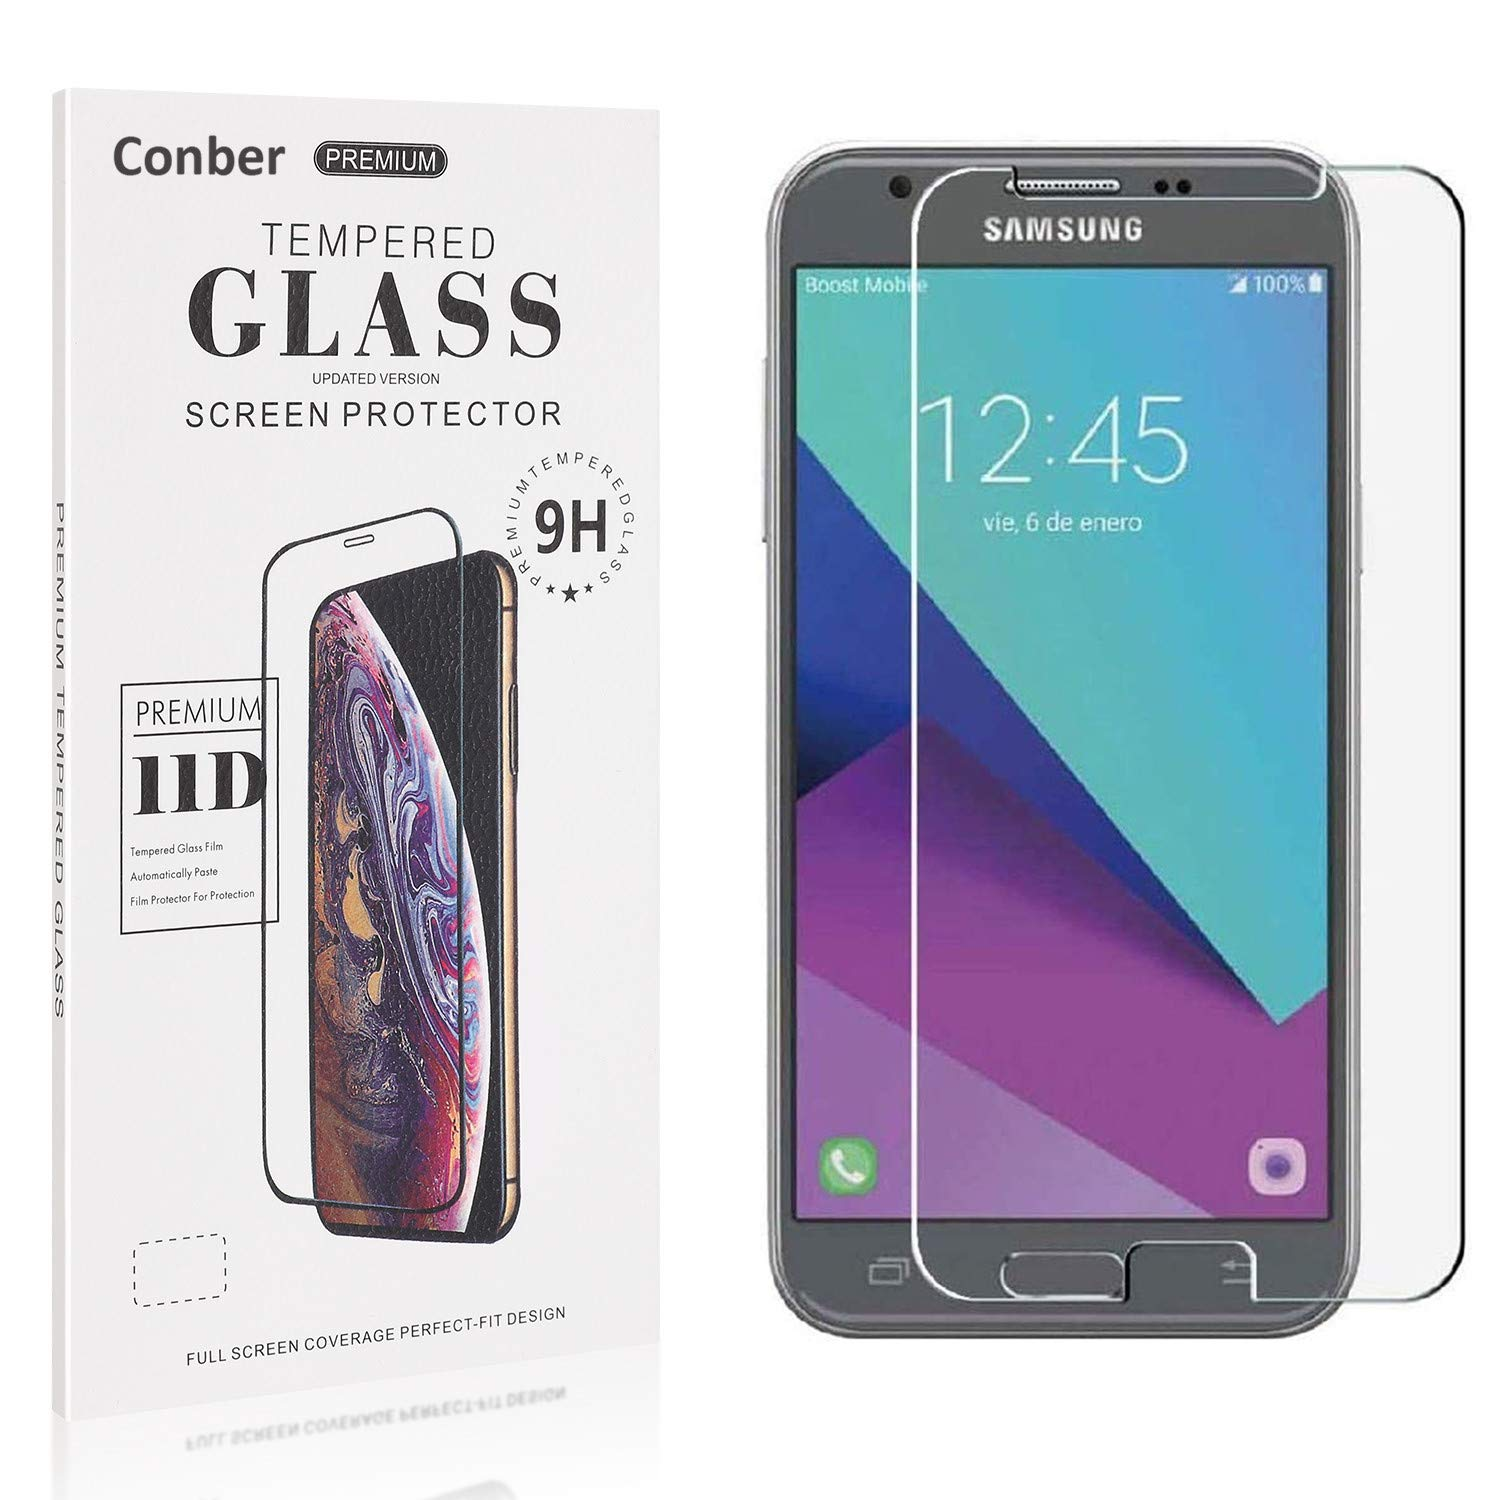 Conber Screen Protector for Max 73% OFF Samsung Bombing new work Galaxy 2017 Pack J3 1 9H